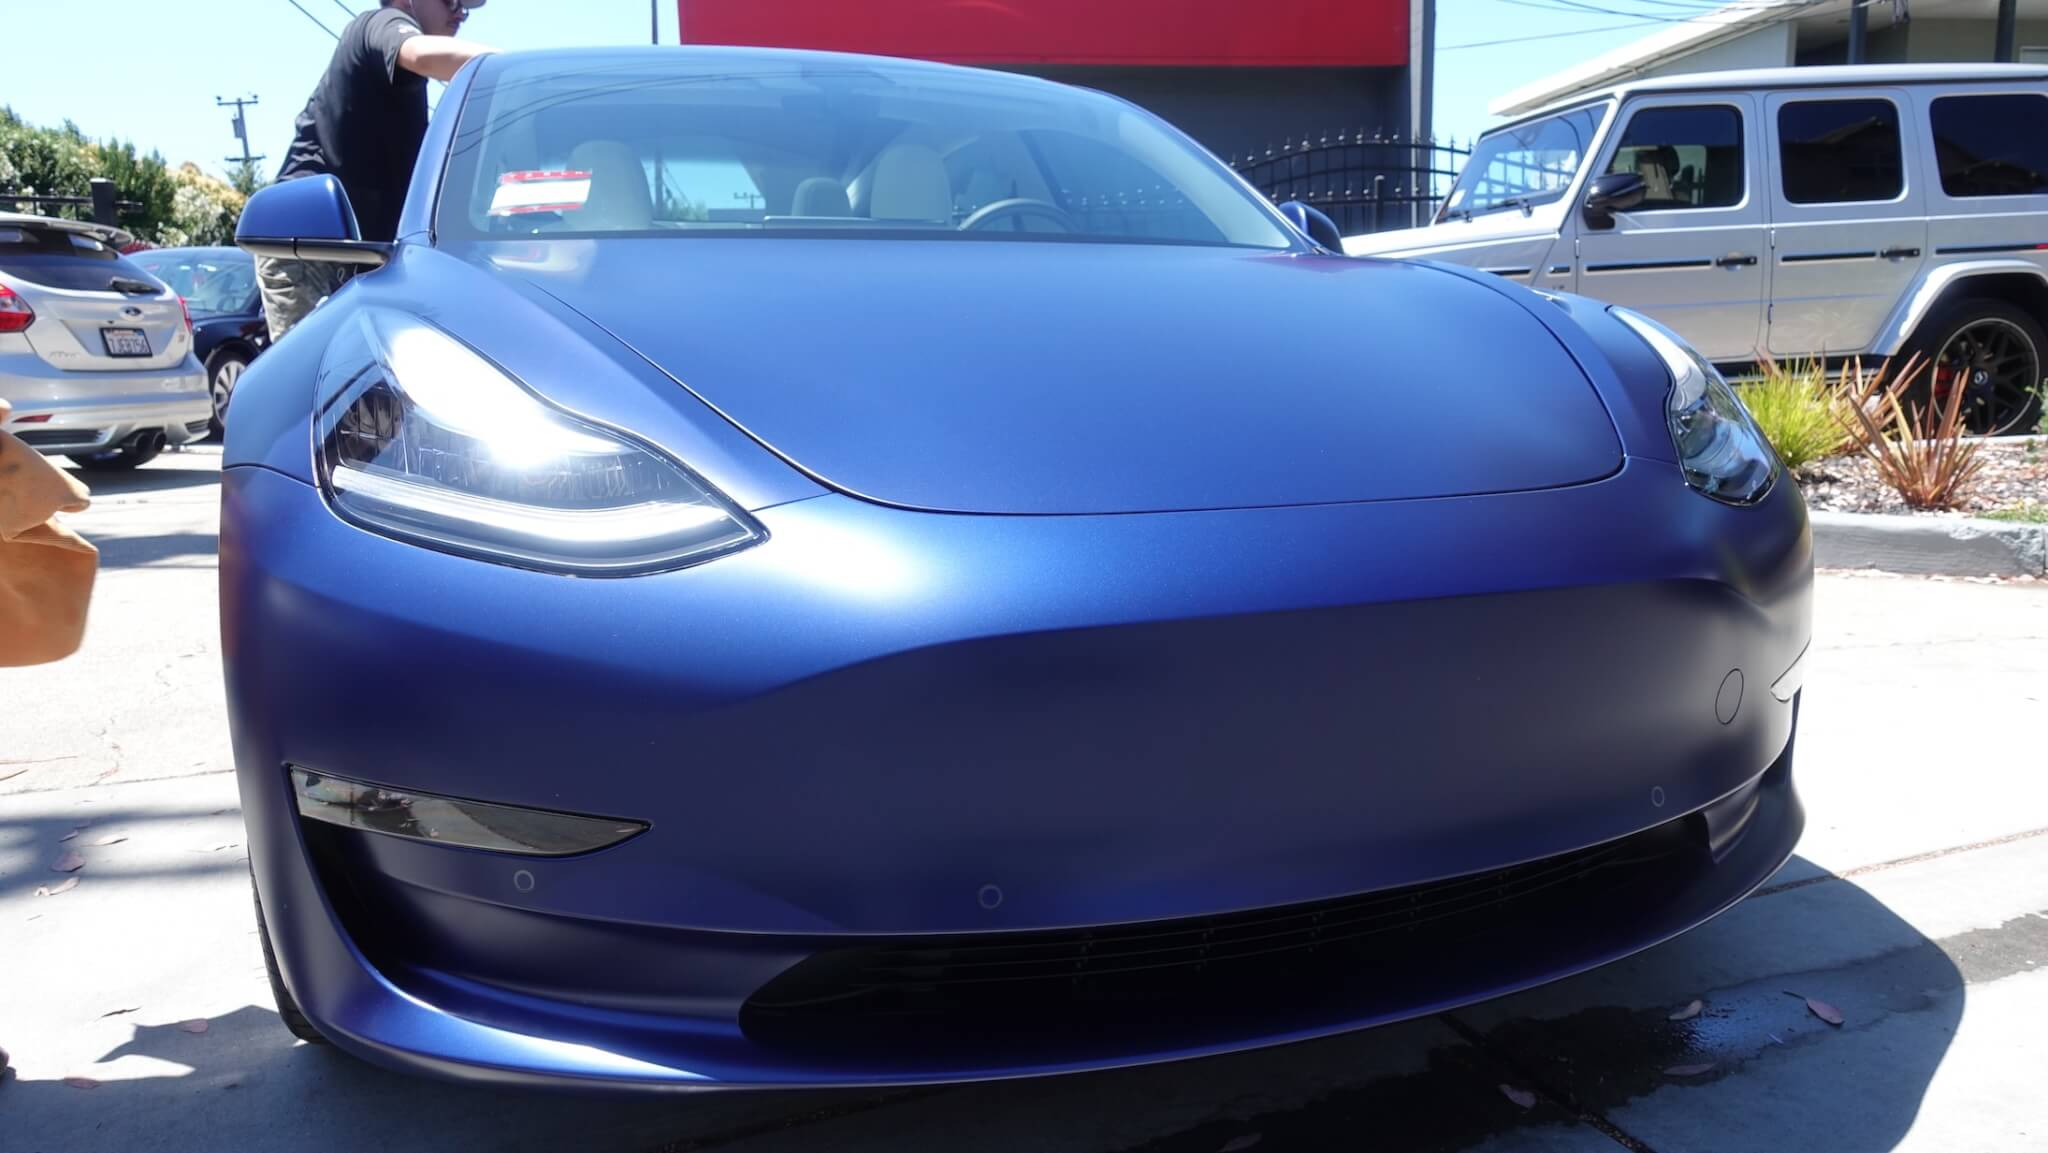 XPEL Stealth - Tesla Model 3 - All colors in matte paint ...